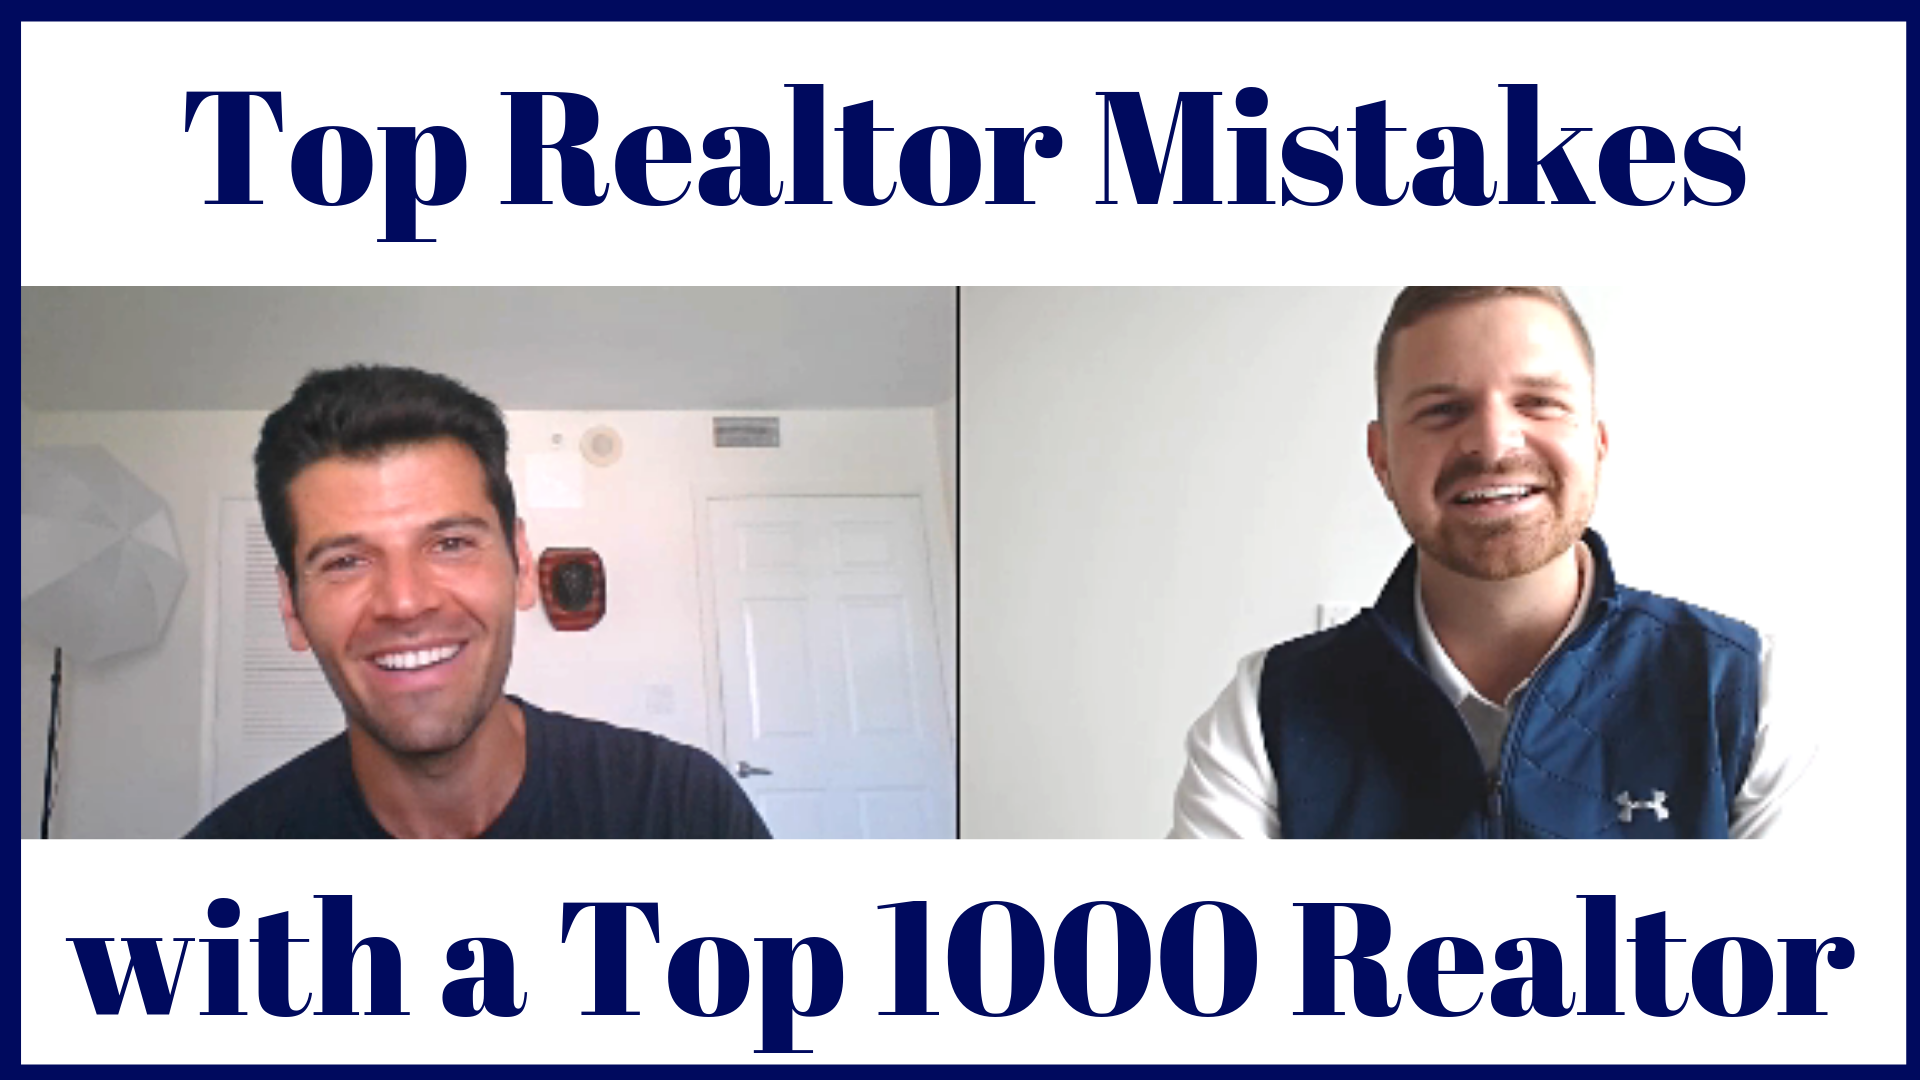 A fun interview with Top 1000 Realtor in the US,  Jonathan Hawkins , of Huntington Beach, CA.